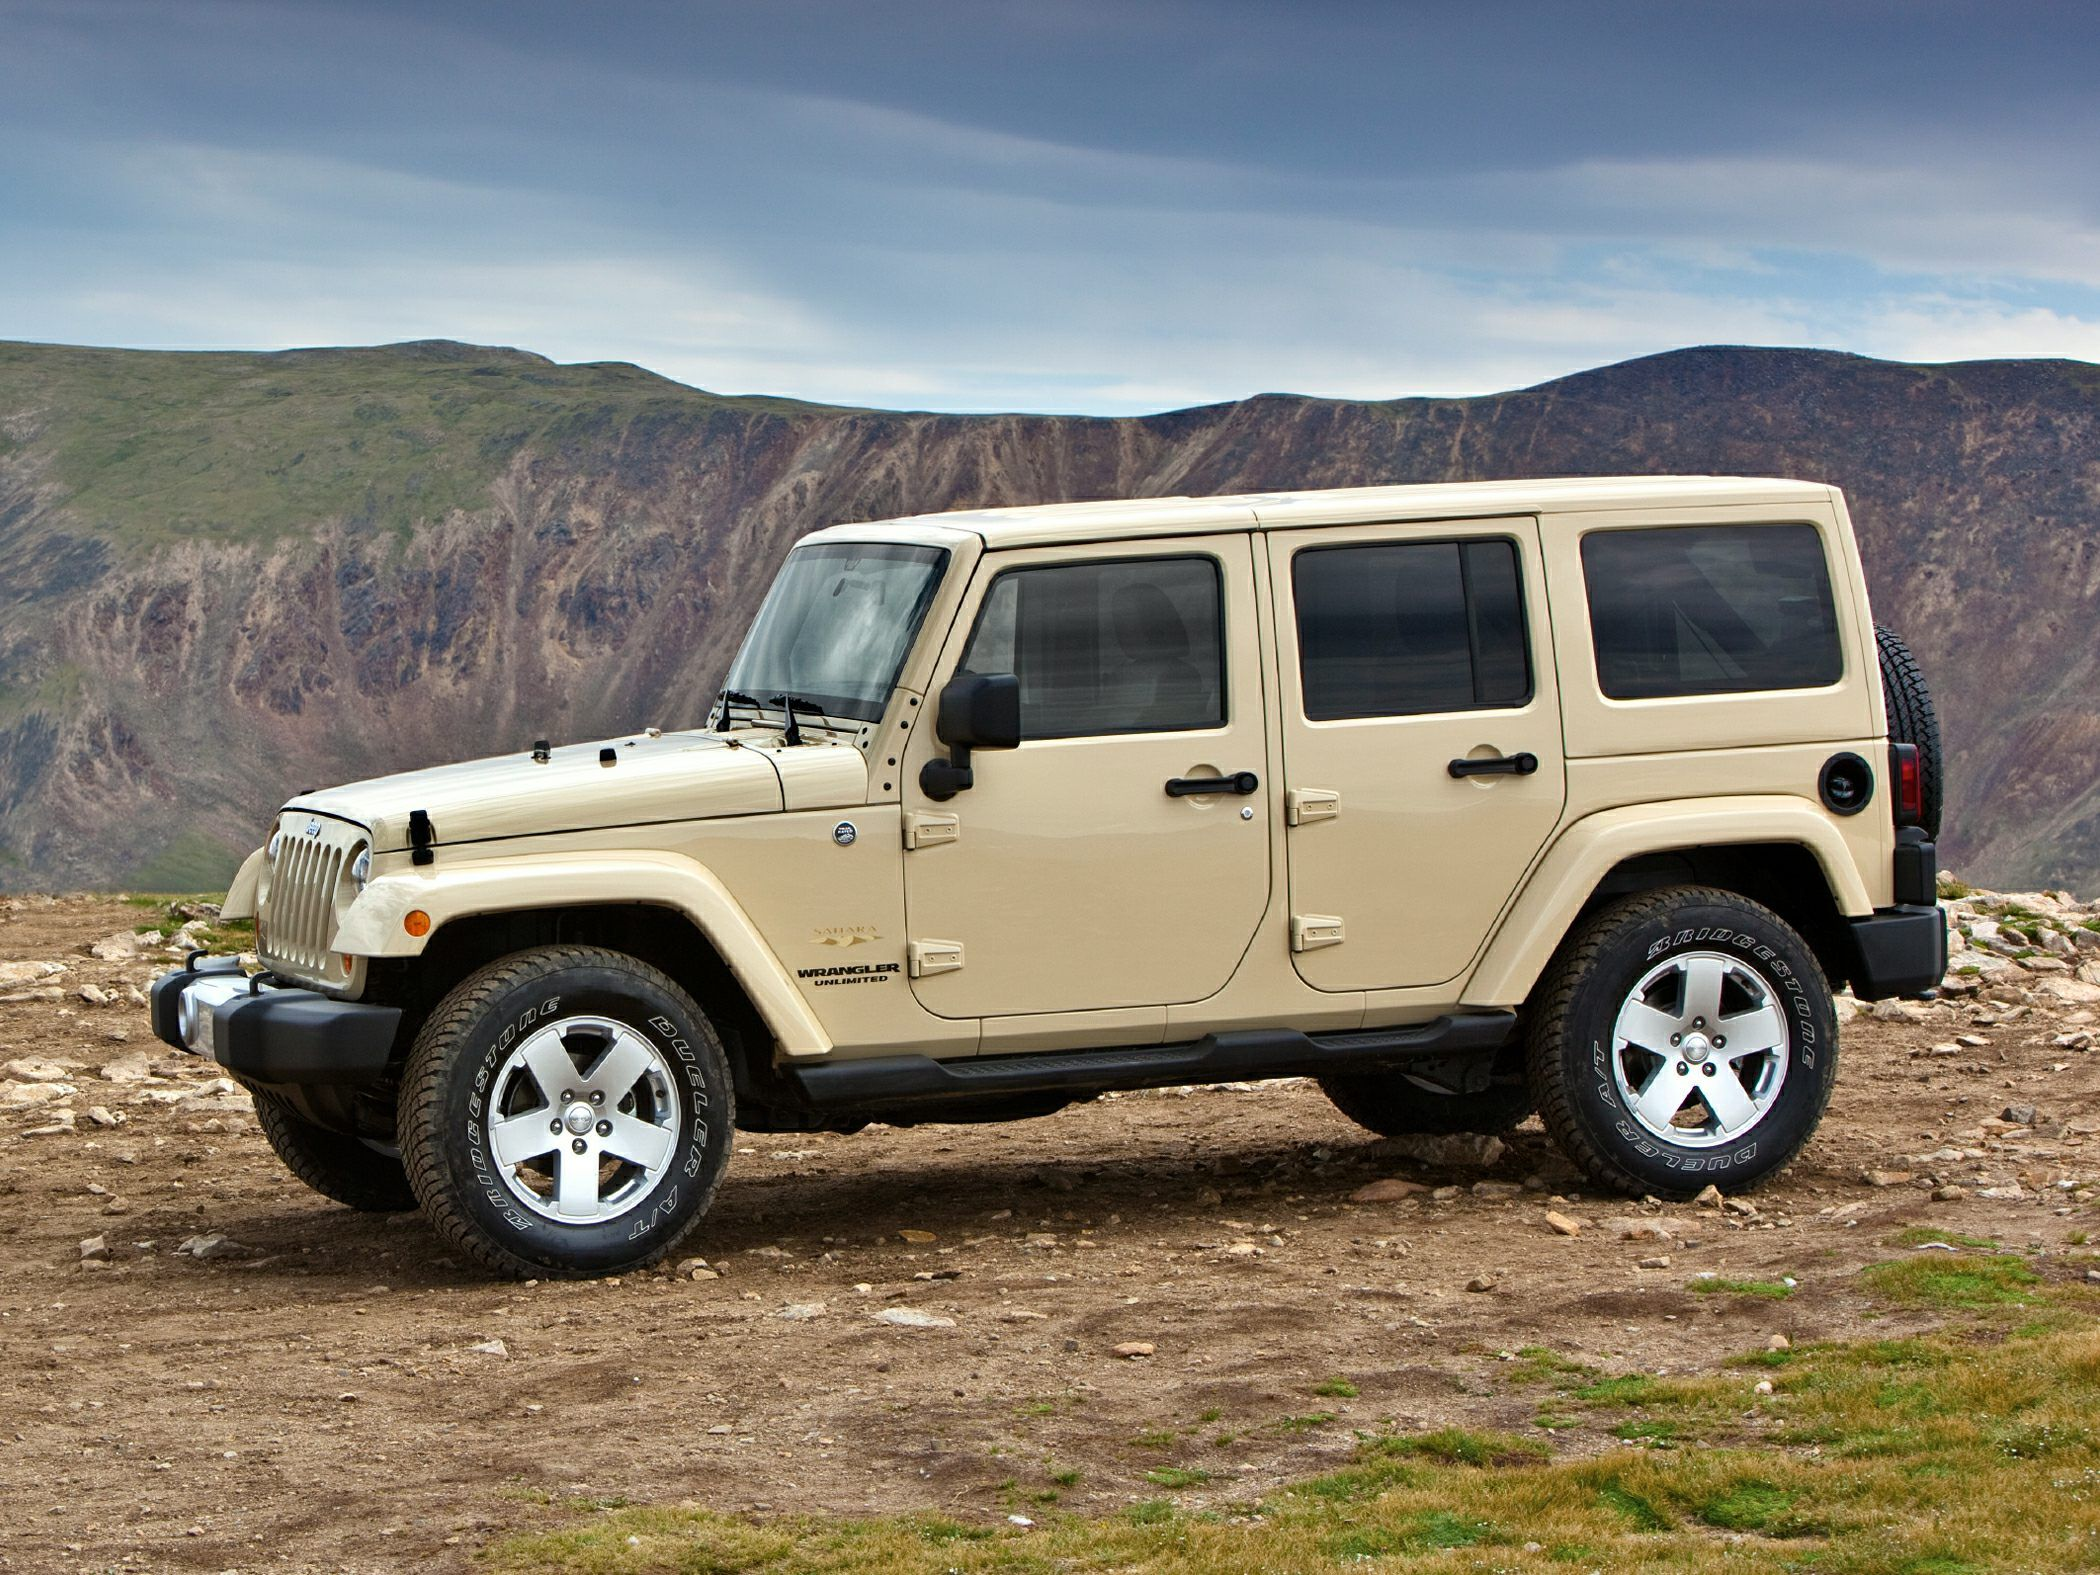 New 2014 Jeep Wrangler Unlimited Price s Reviews Safety